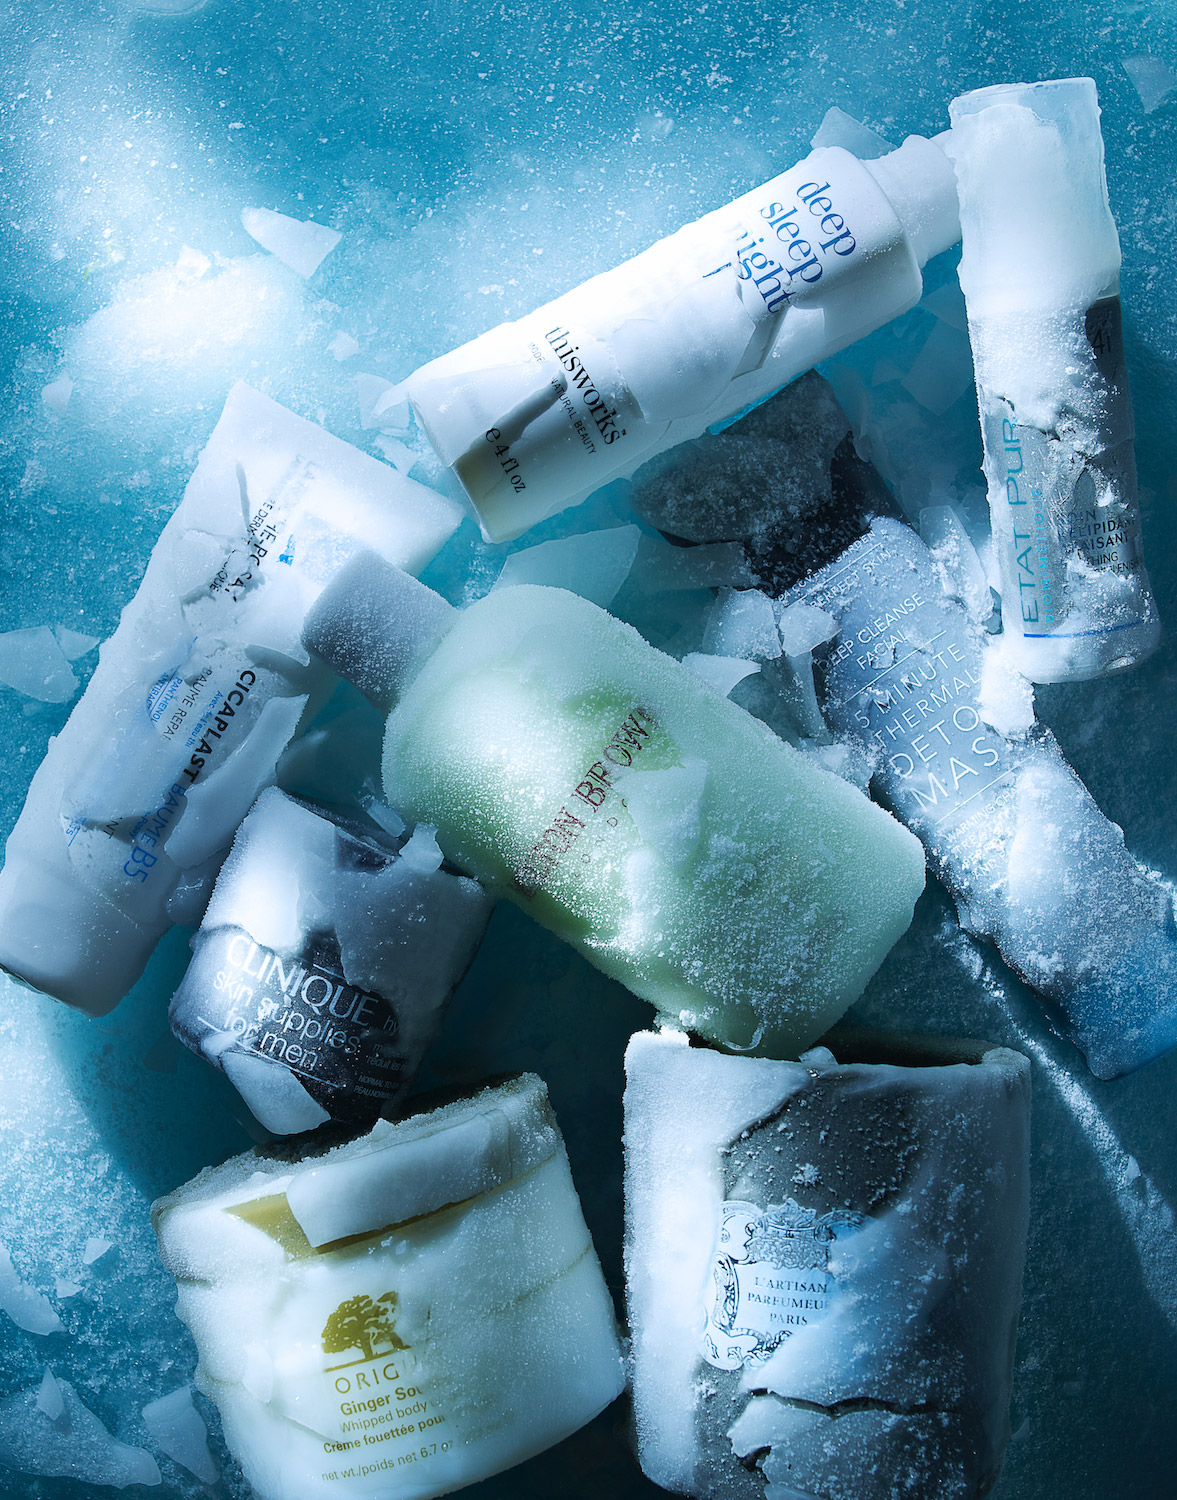 SL-19-021_Still_Life_Product_Photographer_Dennis_Pedersen_Beauty_Cosmetic_Liquid_Frozen_Ice_Cold_Advertising_Editorial_Creative_.jpg